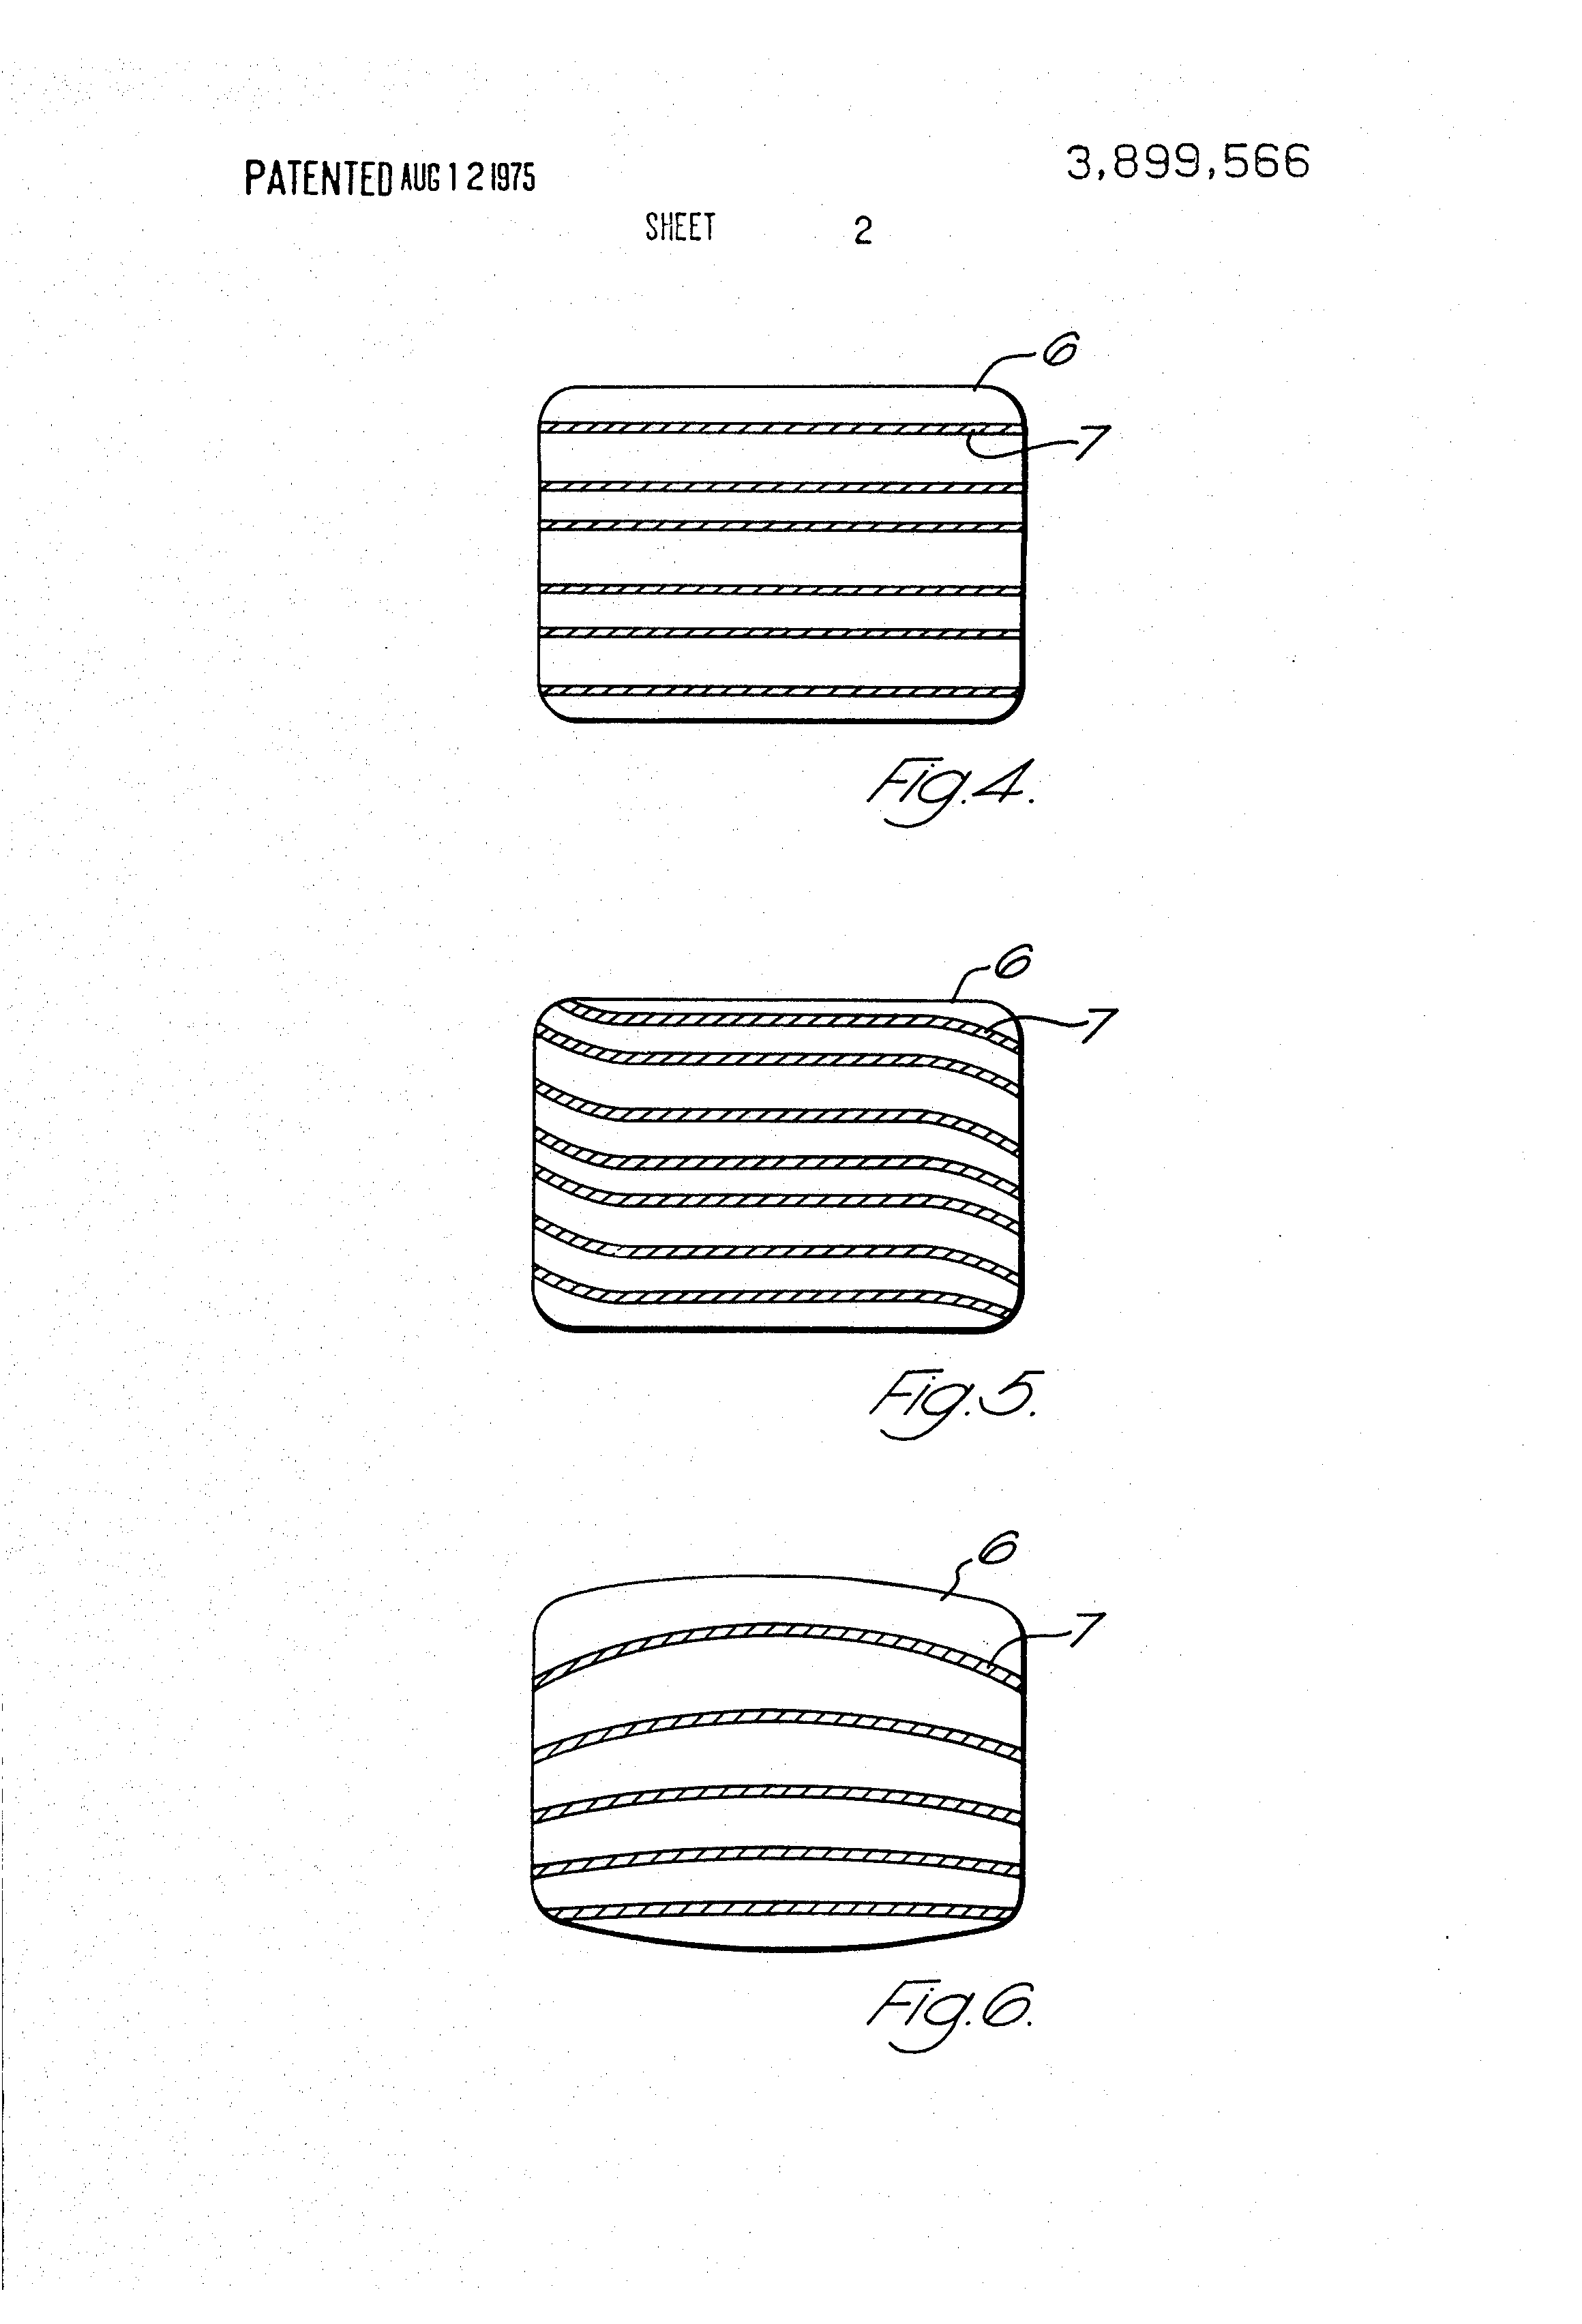 Brevet US3899566 - Process for manufacturing color-striped